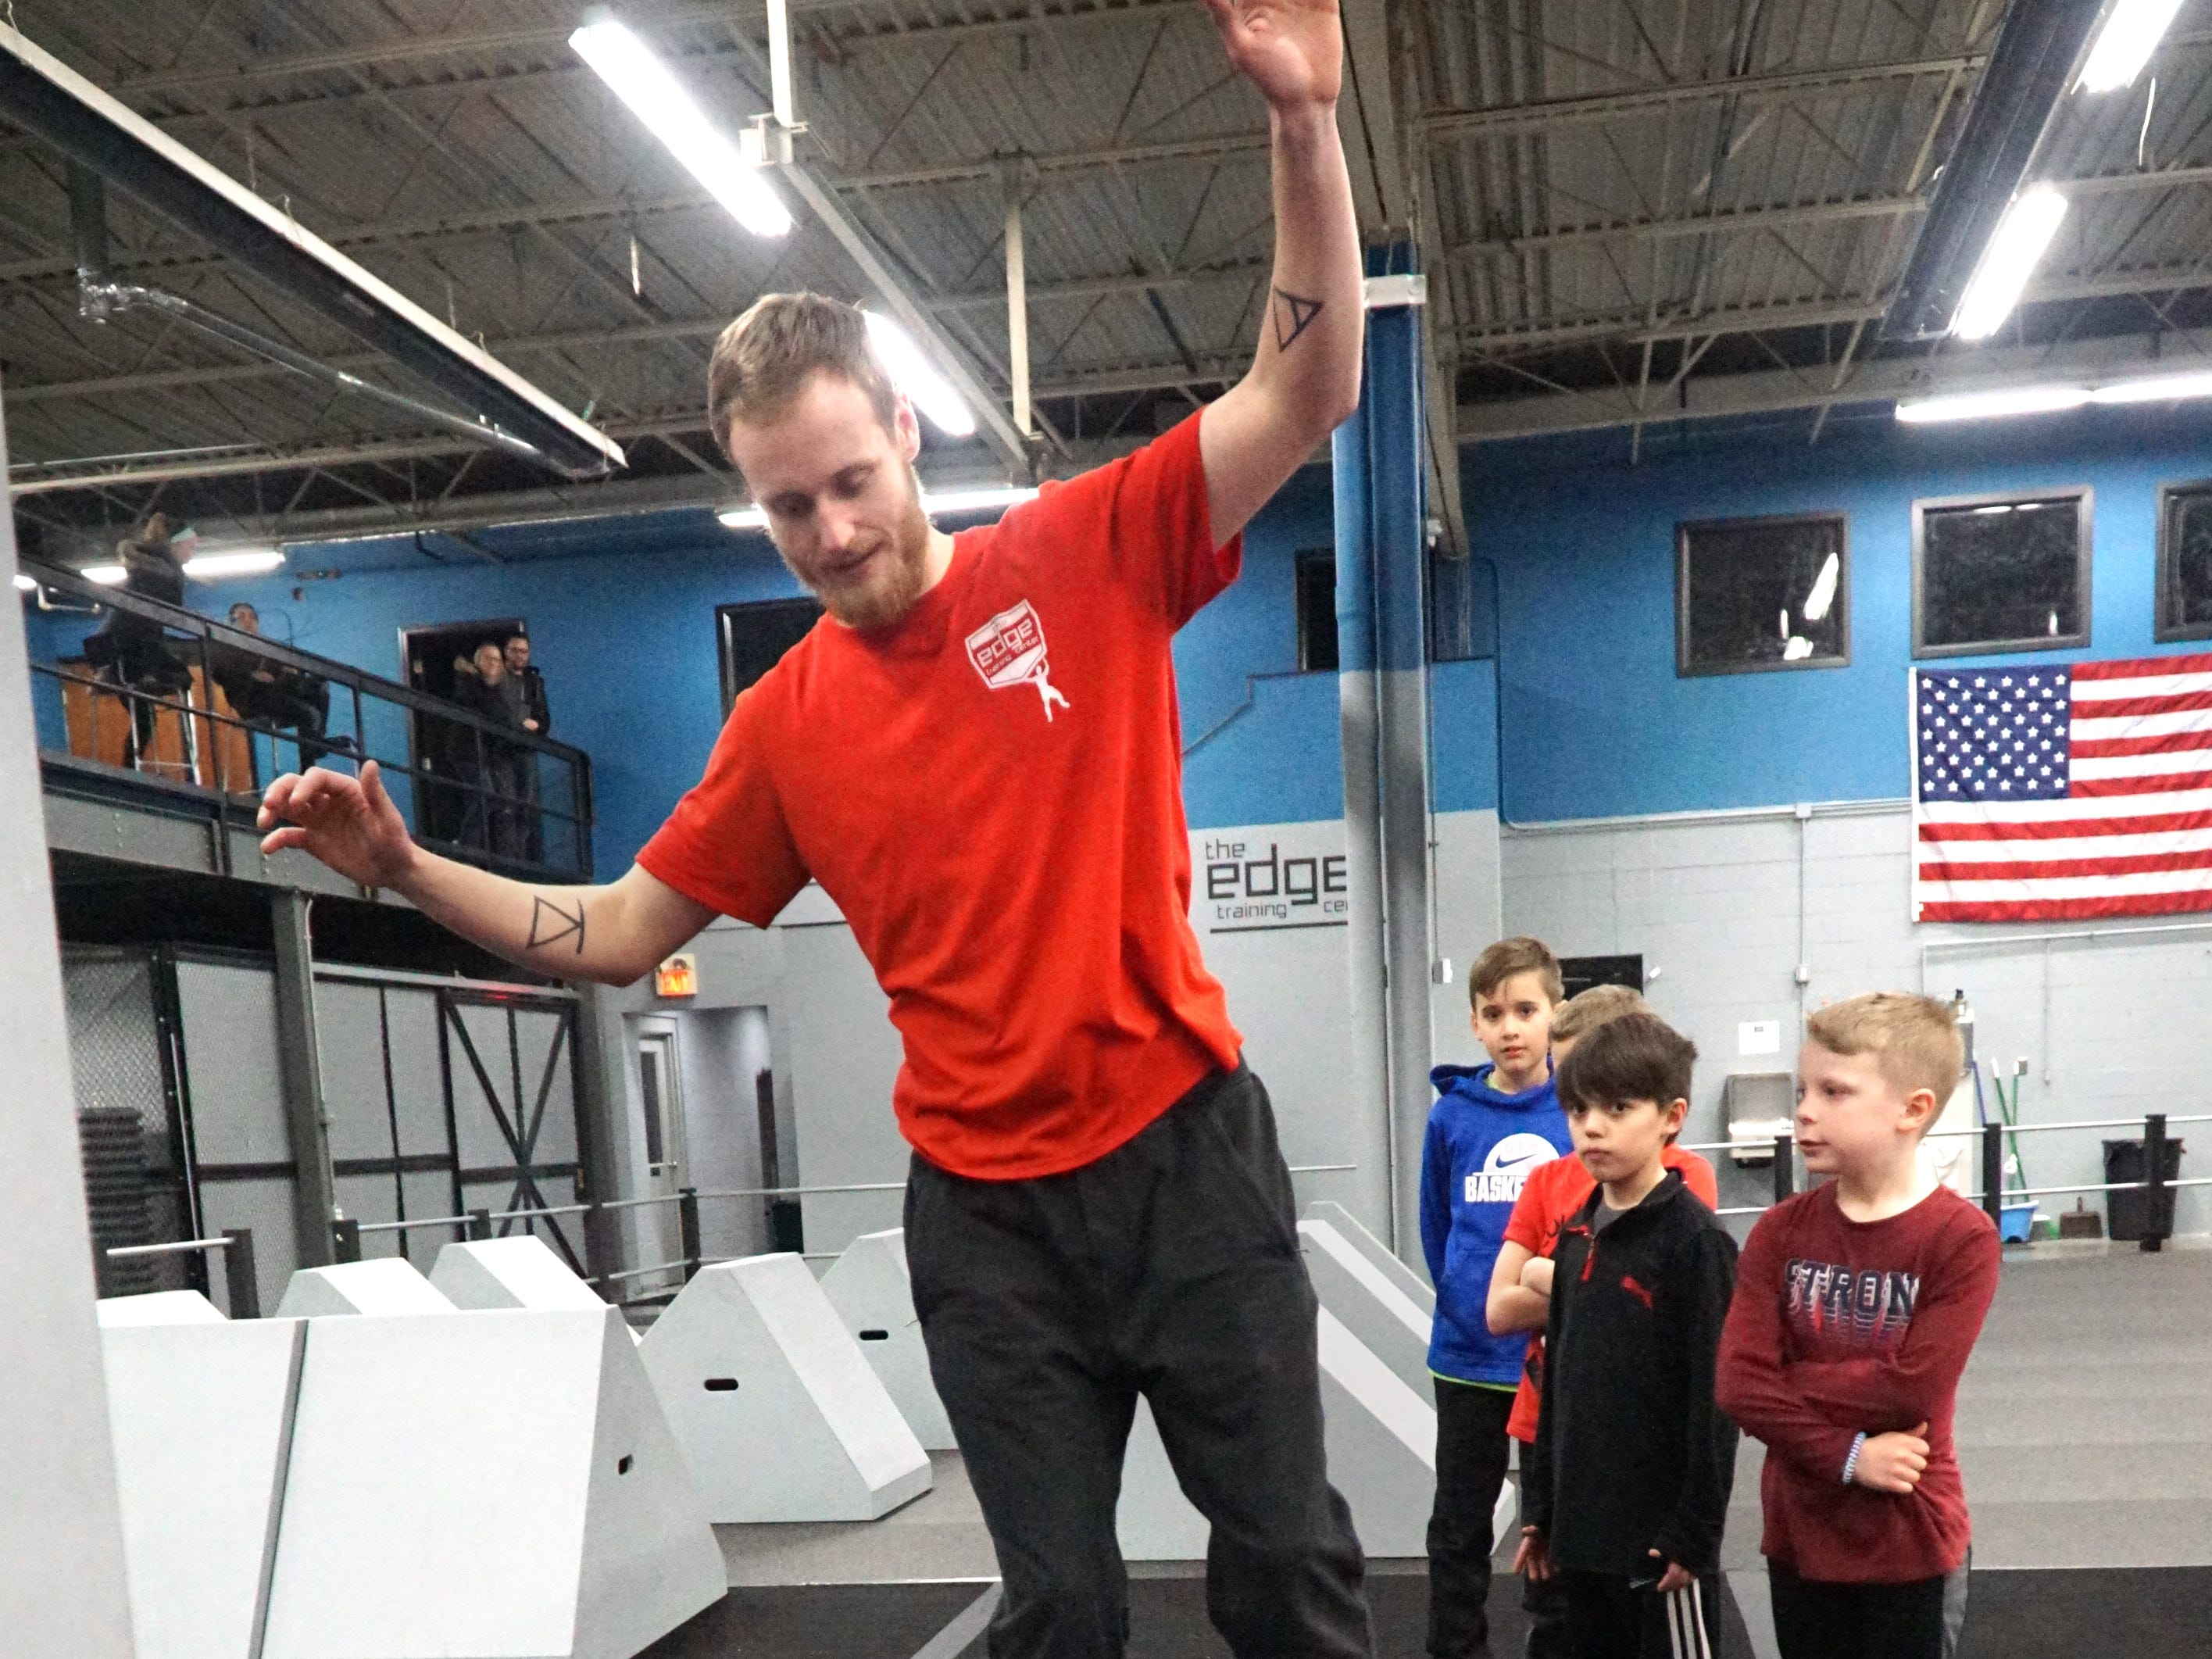 Sam Sherbrooke, son of Carey, demonstrates to a group of kids how he'd like them to walk across a balance pipe section of an obstacle course on March 12.